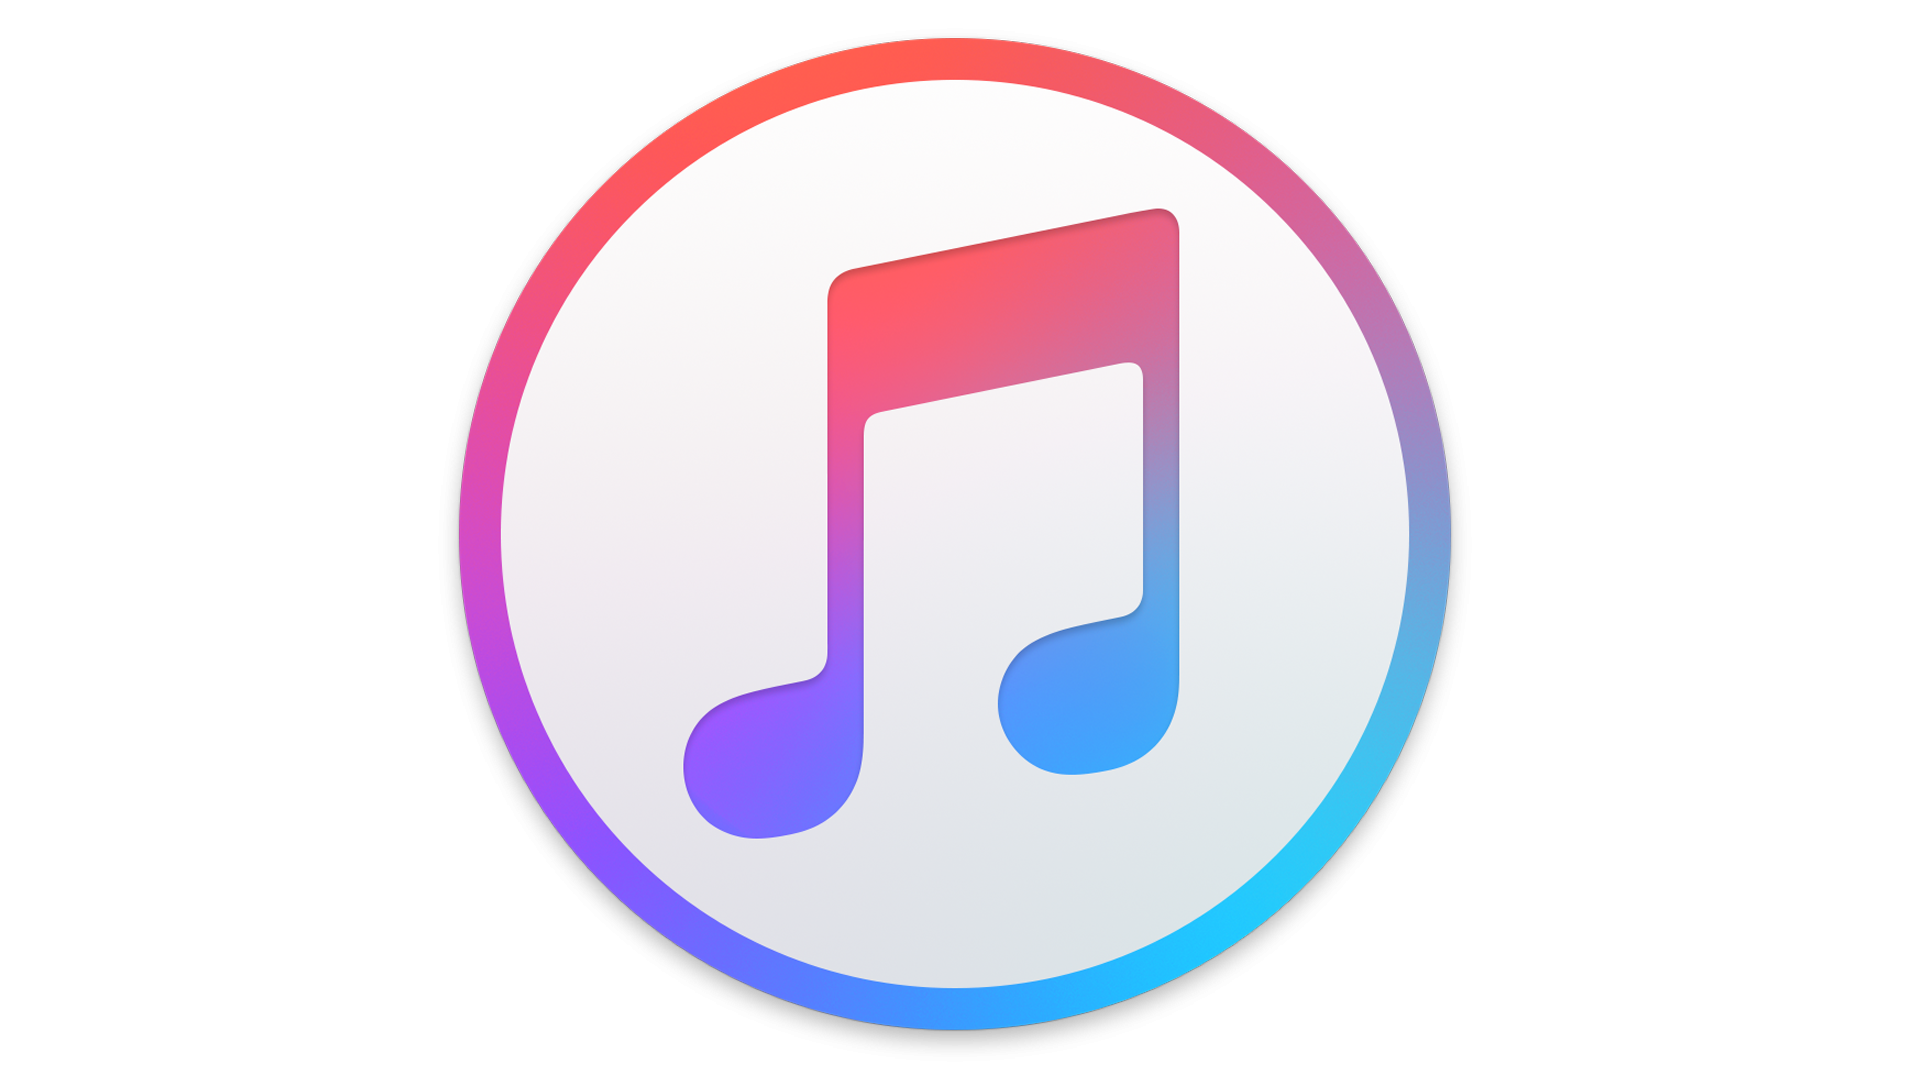 Hack returns color to gray itunes 10 appletoolbox.